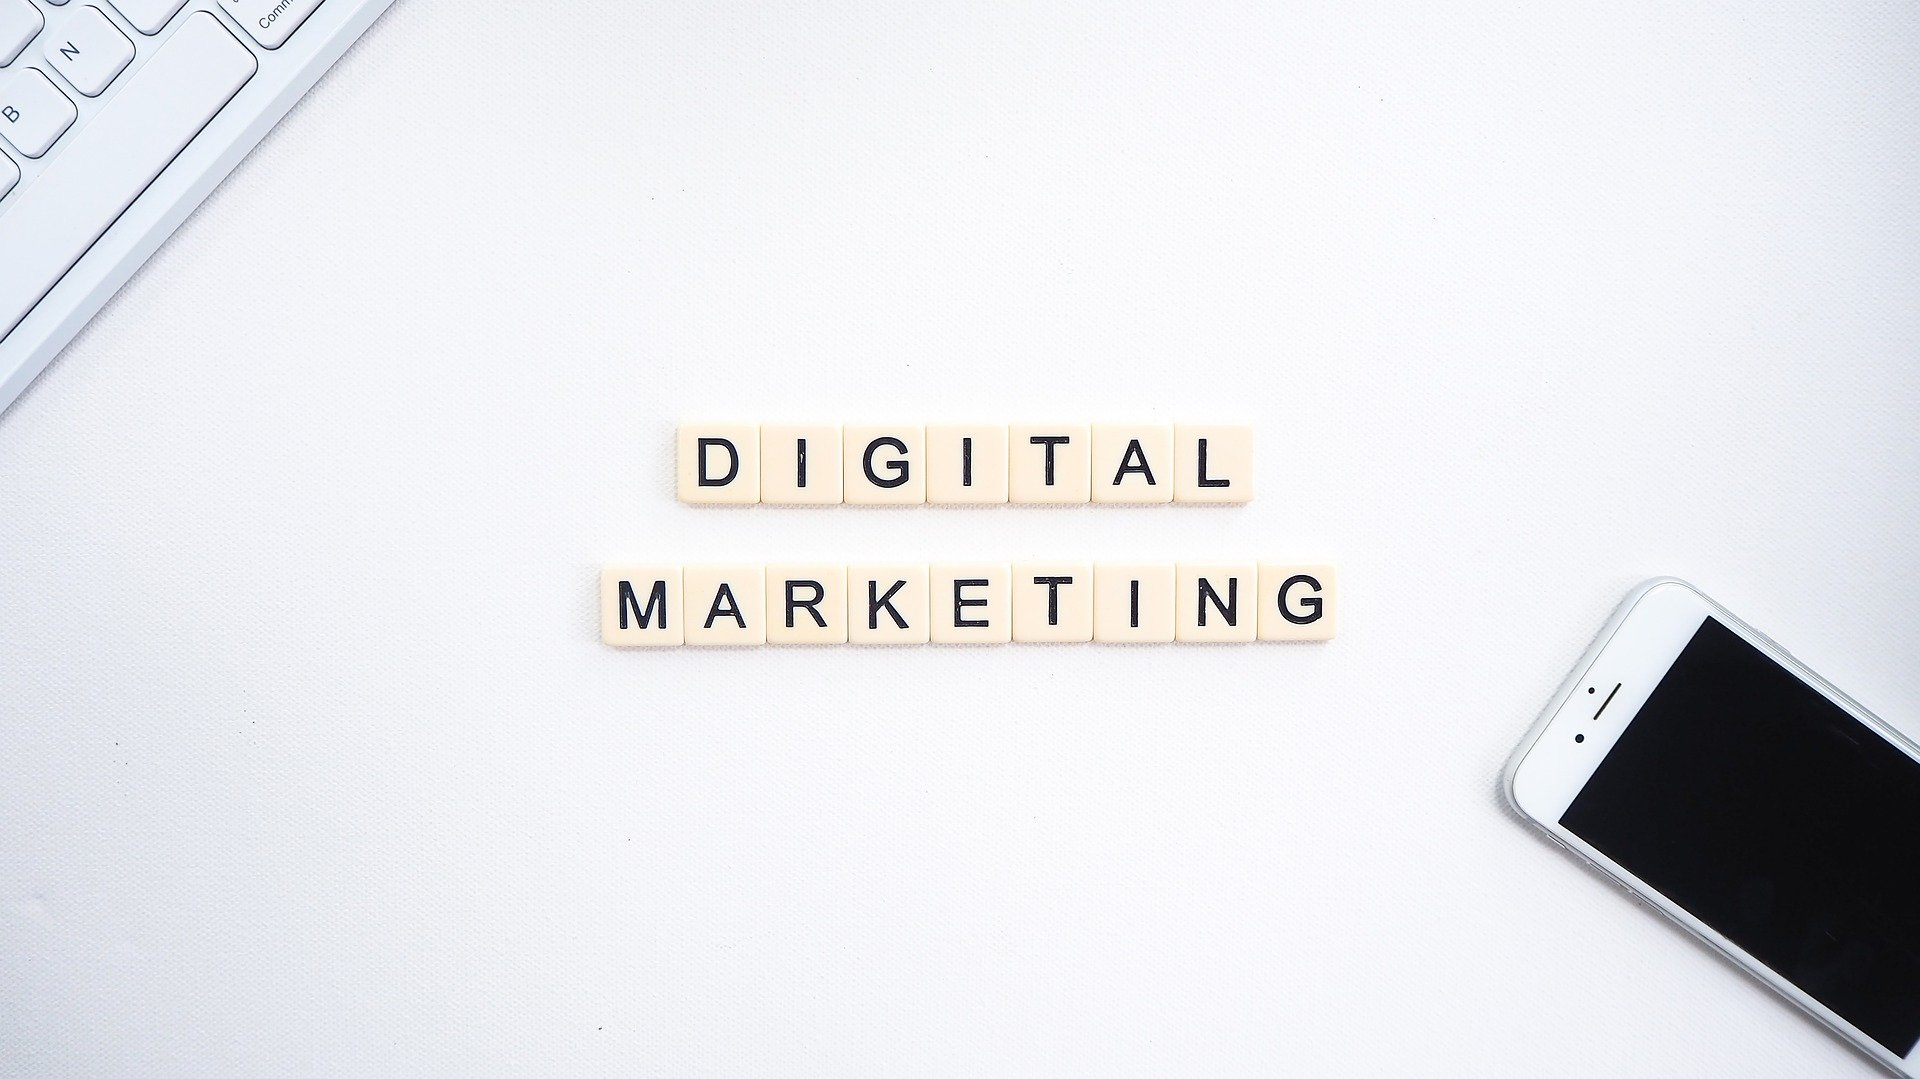 5 reasons why Digital Marketing is significant in the present business?